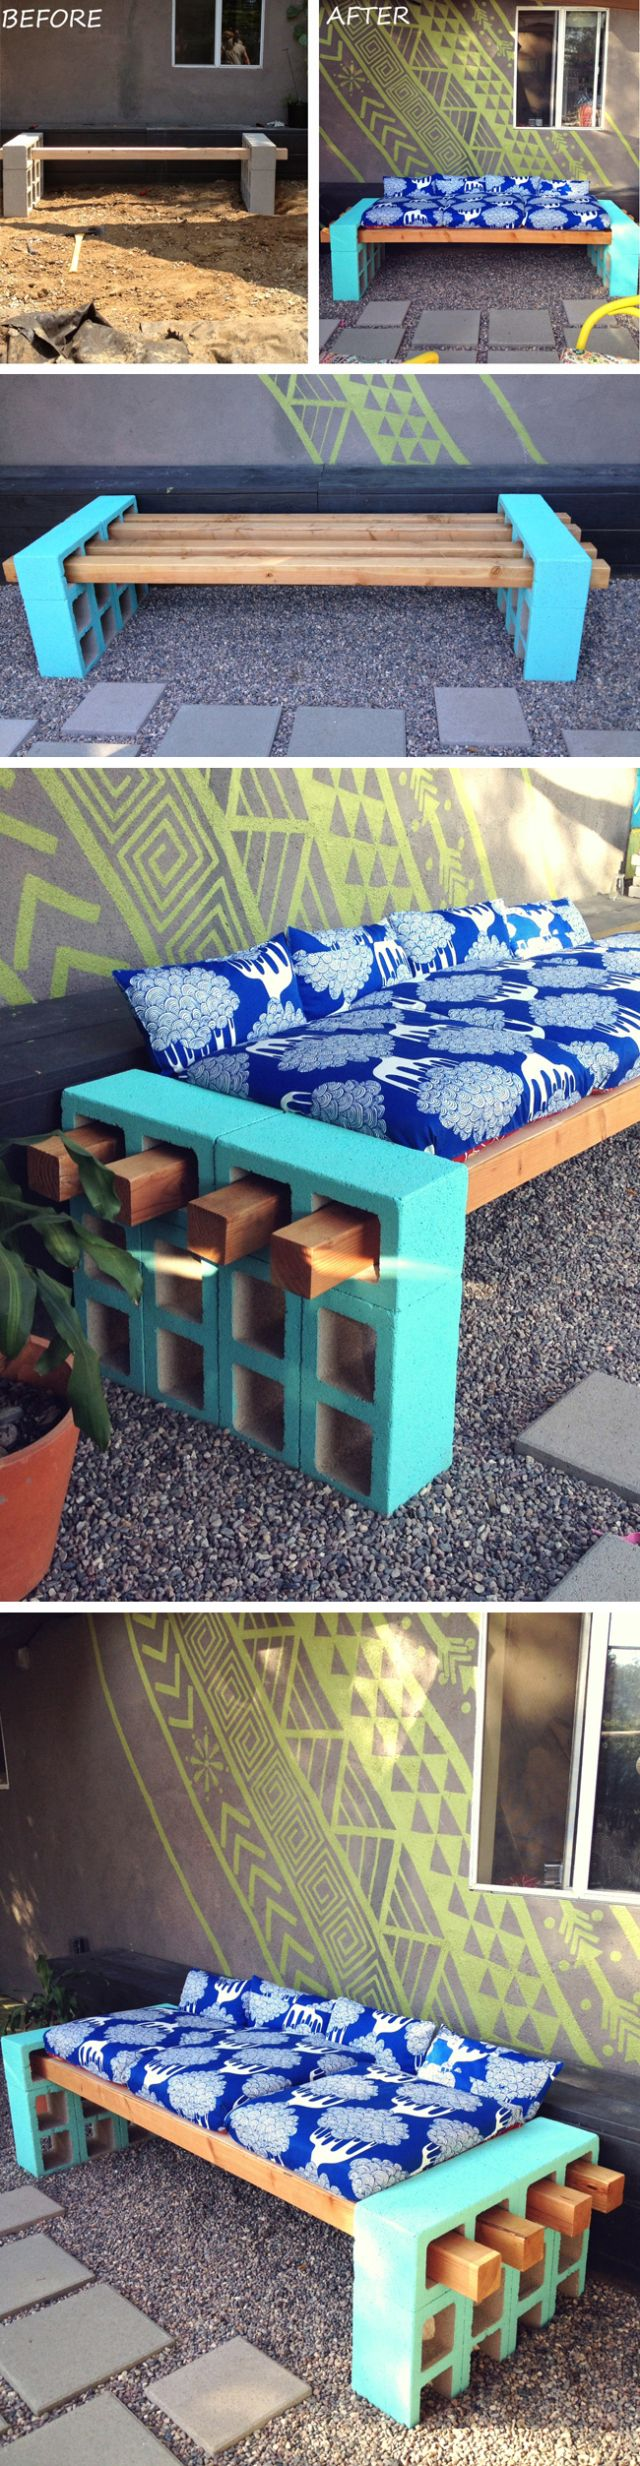 DIY concrete block bench seating | furniture design | awesome DIY inspiration…